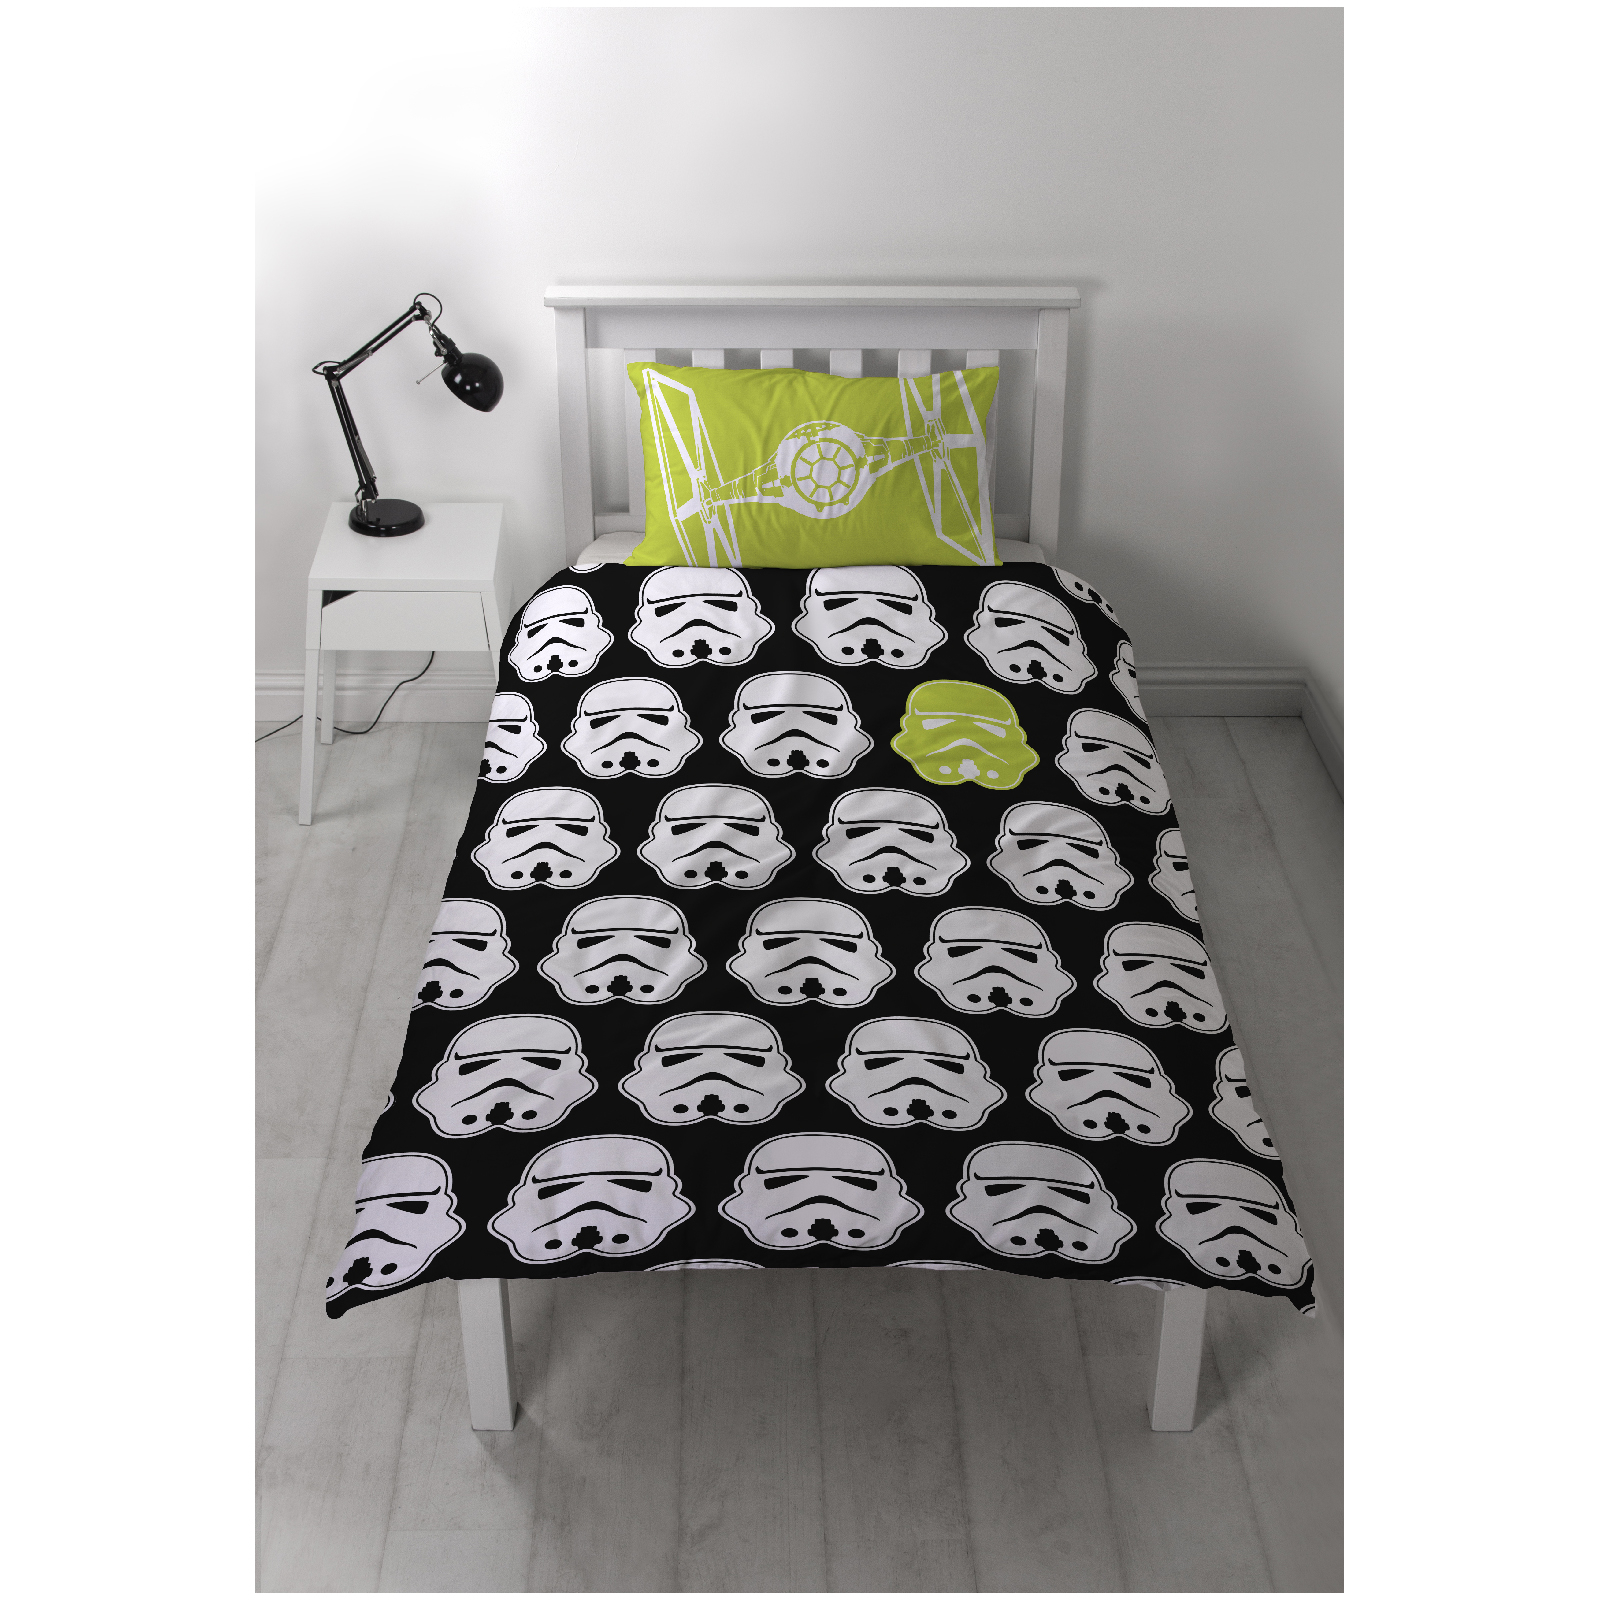 Stormtrooper Bed Sheets Star Wars Classic Stormtrooper Panel Duvet Set Homeware